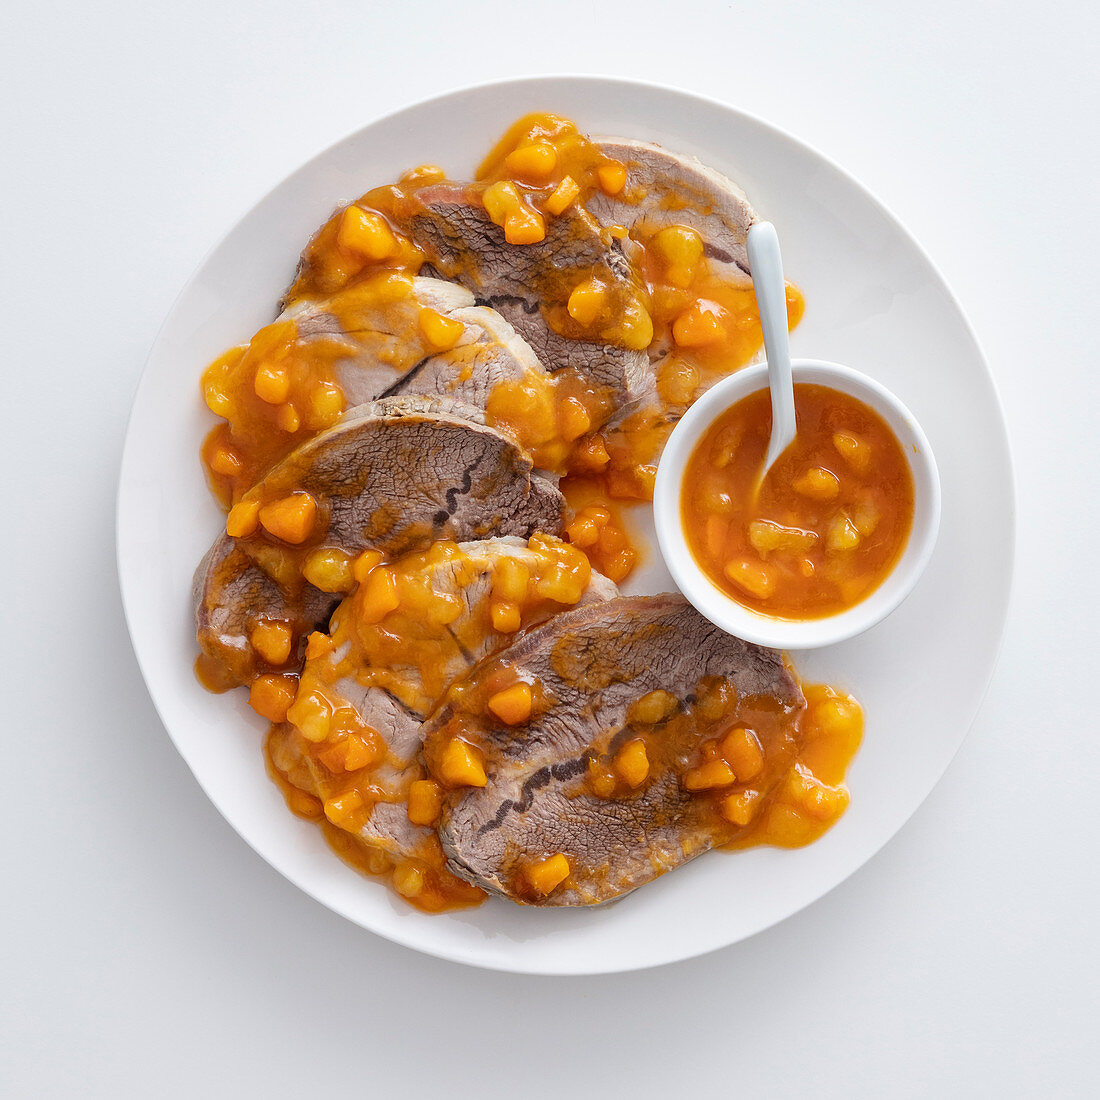 Boiled veal and beef with a pumpkin and pear chutney